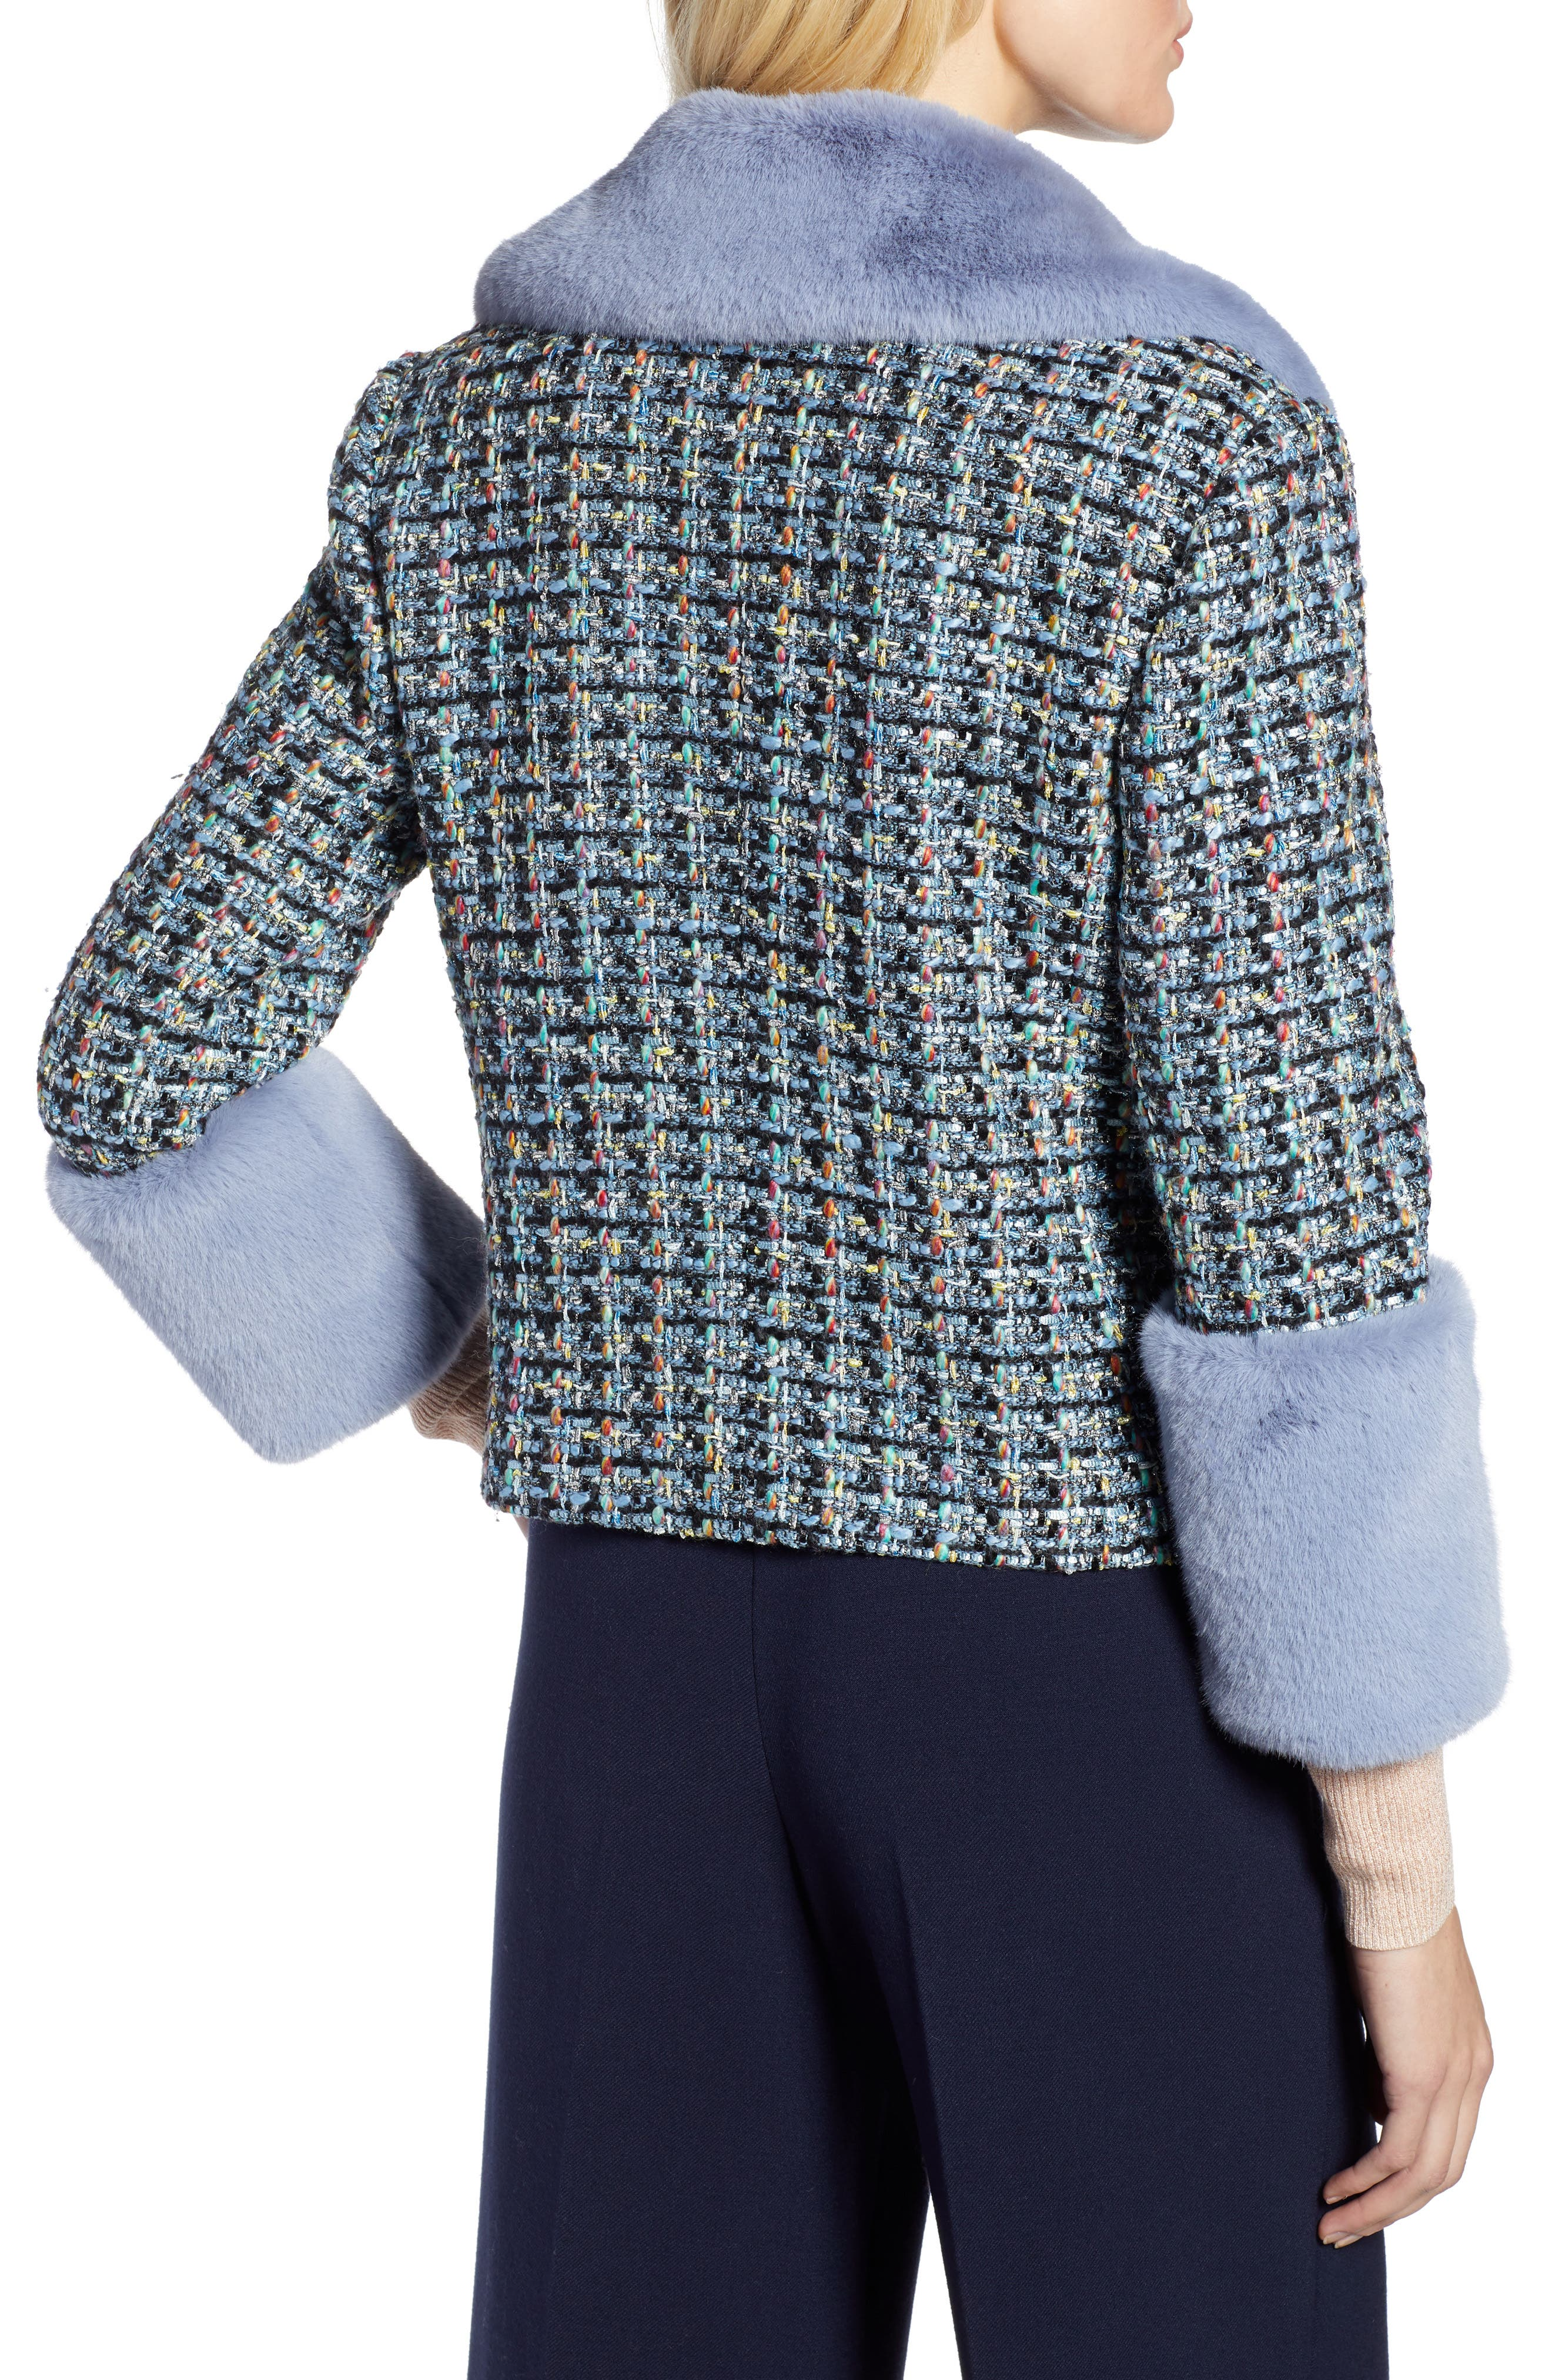 x Atlantic-Pacific Tweed Jacket with Removable Faux Fur Trim,                             Alternate thumbnail 3, color,                             BLACK MULTI TWEED